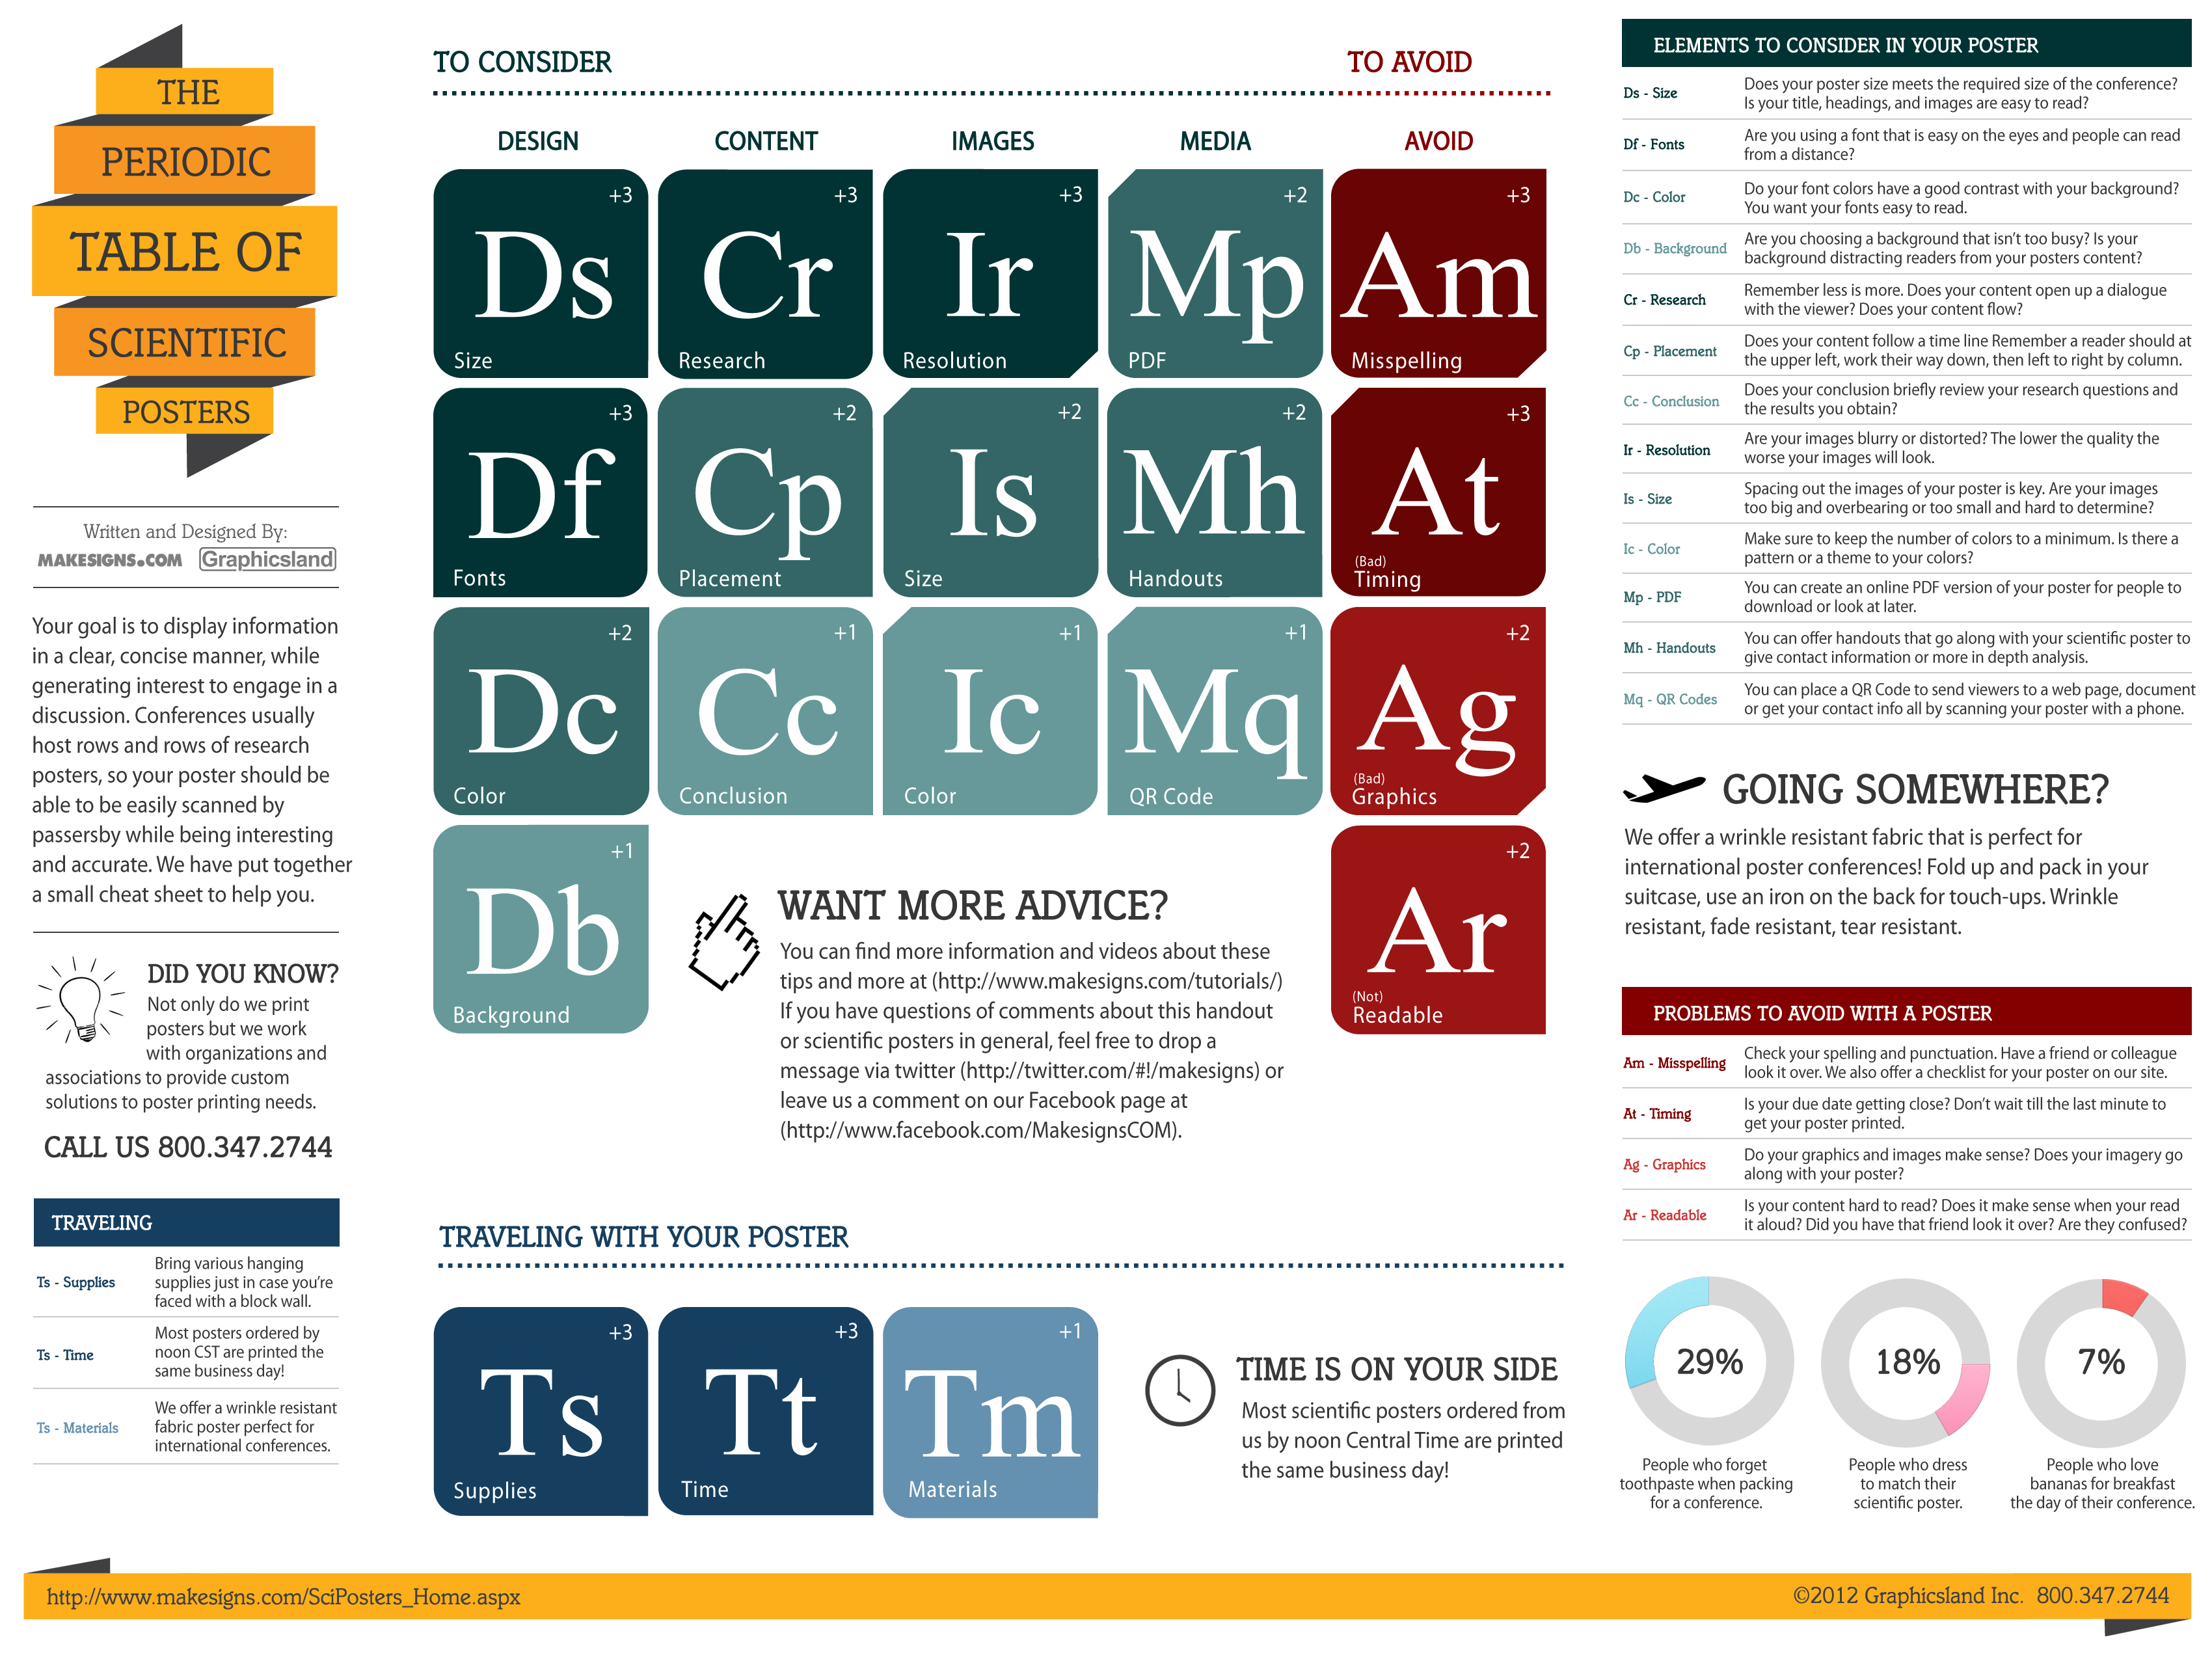 Poster images graphs and coloring choosing the right media for download our periodic table of scietific posters urtaz Images